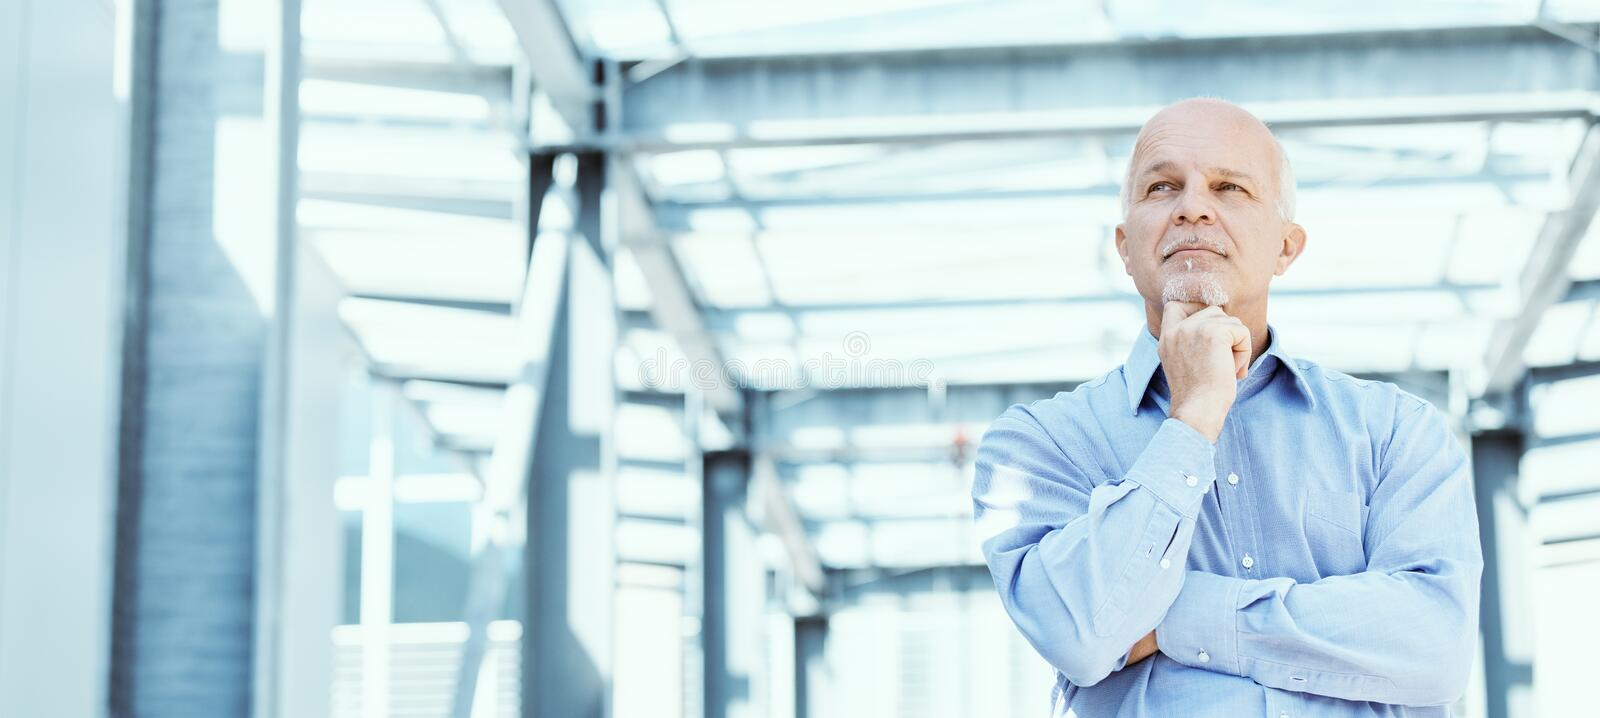 Low angle view of Business man. In corridor looking off in the distance with arms folded and hand on chin blue tones stock photo